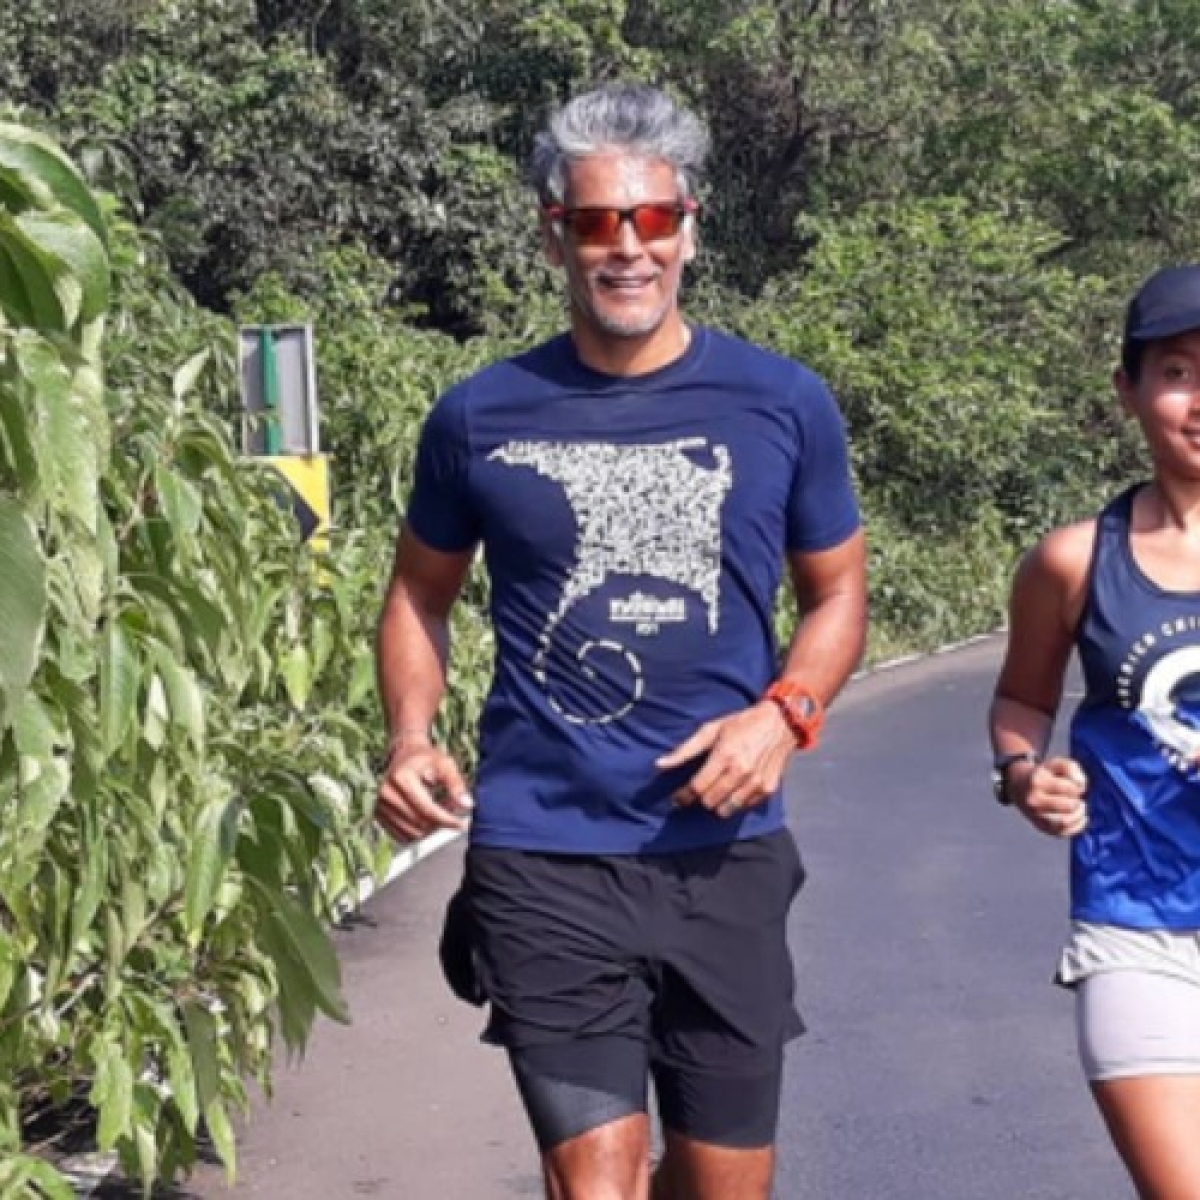 'I did?': Milind Soman stopped in his tracks after man claims he married a 16-year-old!